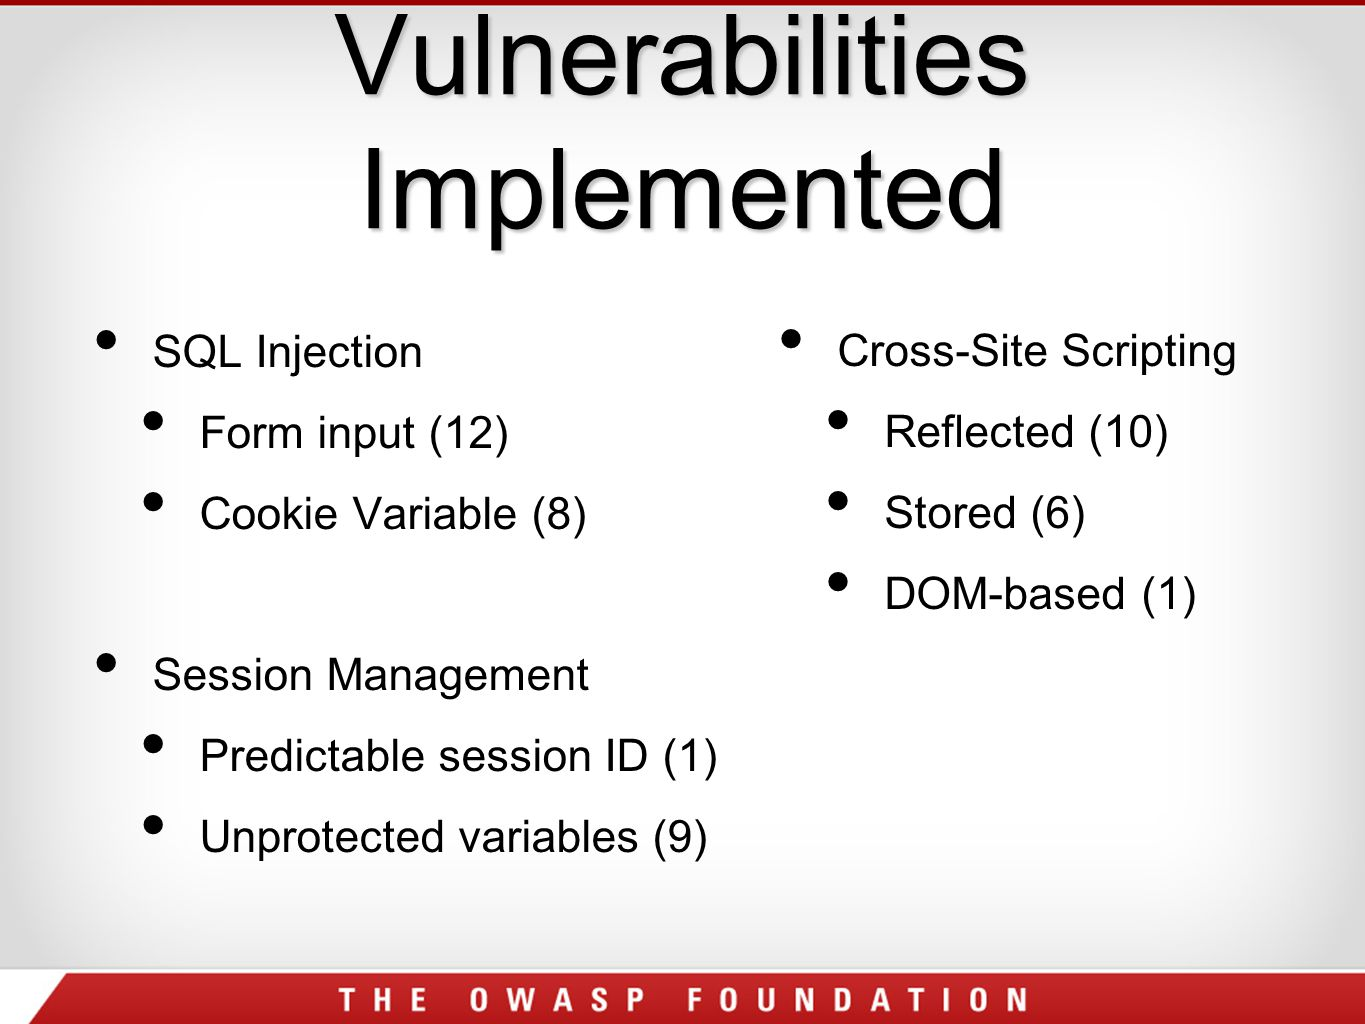 Vulnerabilities Implemented SQL Injection Form input (12) Cookie Variable (8) Session Management Predictable session ID (1) Unprotected variables (9) Cross-Site Scripting Reflected (10) Stored (6) DOM-based (1)